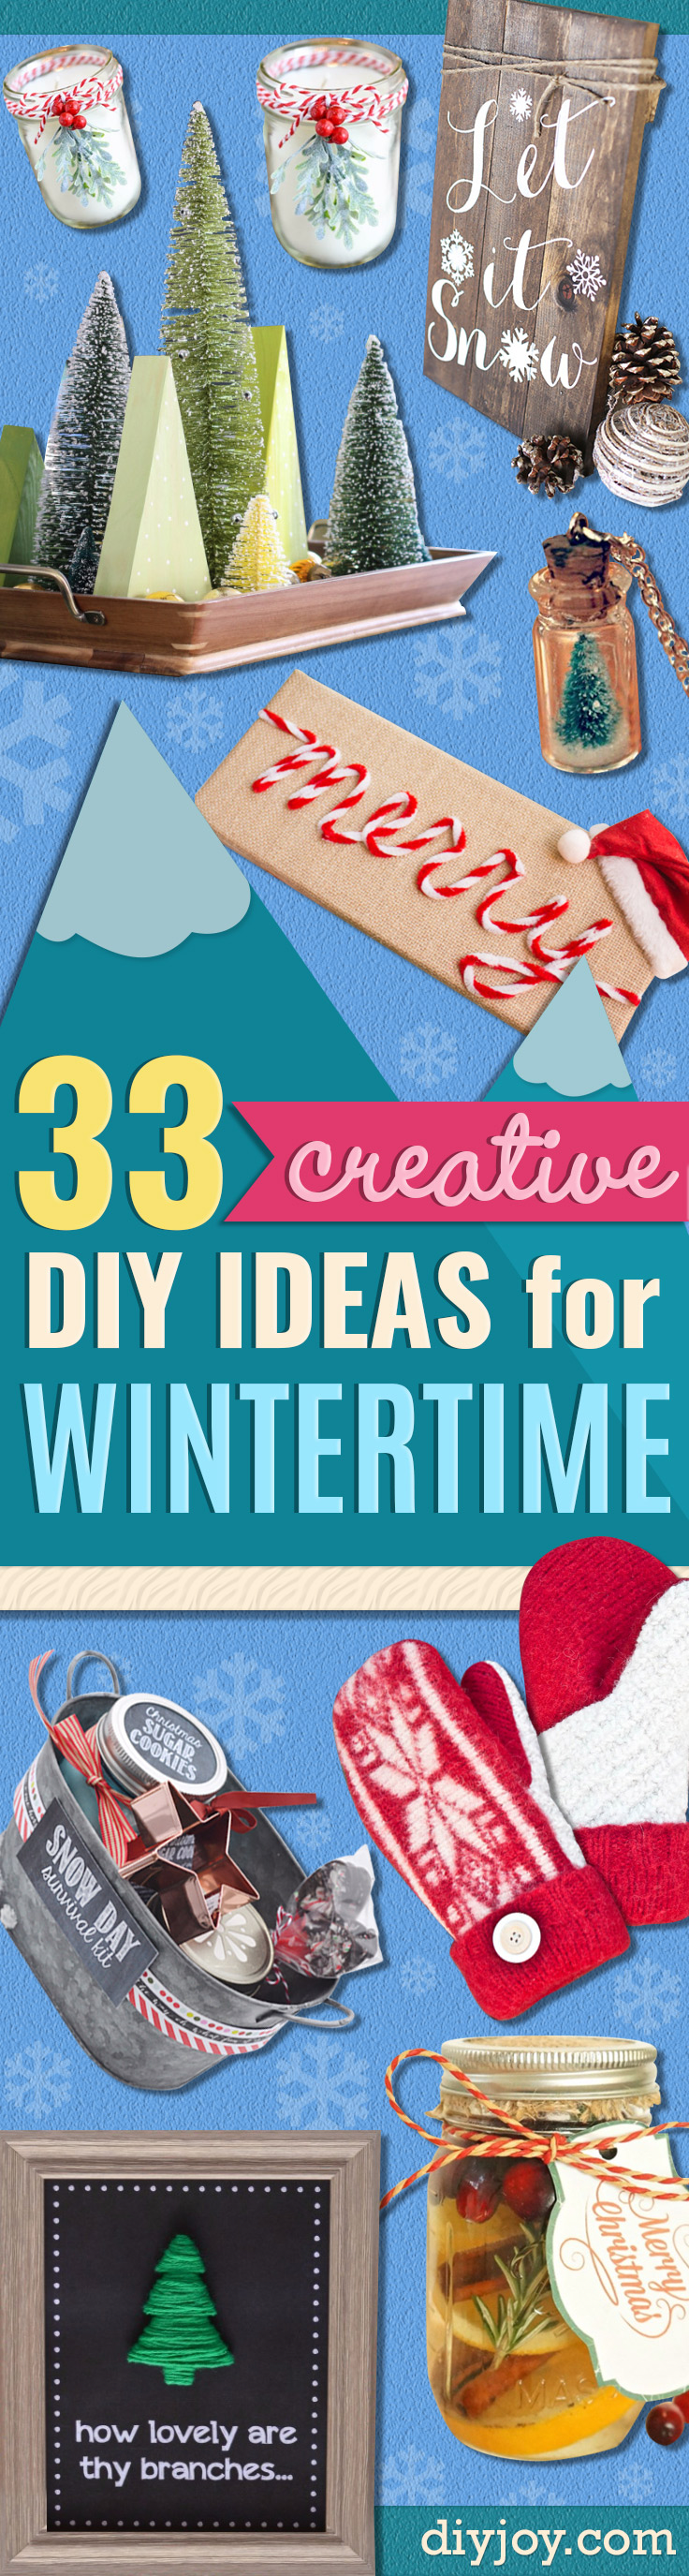 Best DIY Ideas for Wintertime - Winter Crafts with Snowflakes, Icicle Art and Projects, Wreaths, Woodland and Winter Wonderland Decor, Mason Jars and Dollar Store Ideas - Easy DIY Ideas to Decorate Home and Room for Winter #winter #crafts #diy